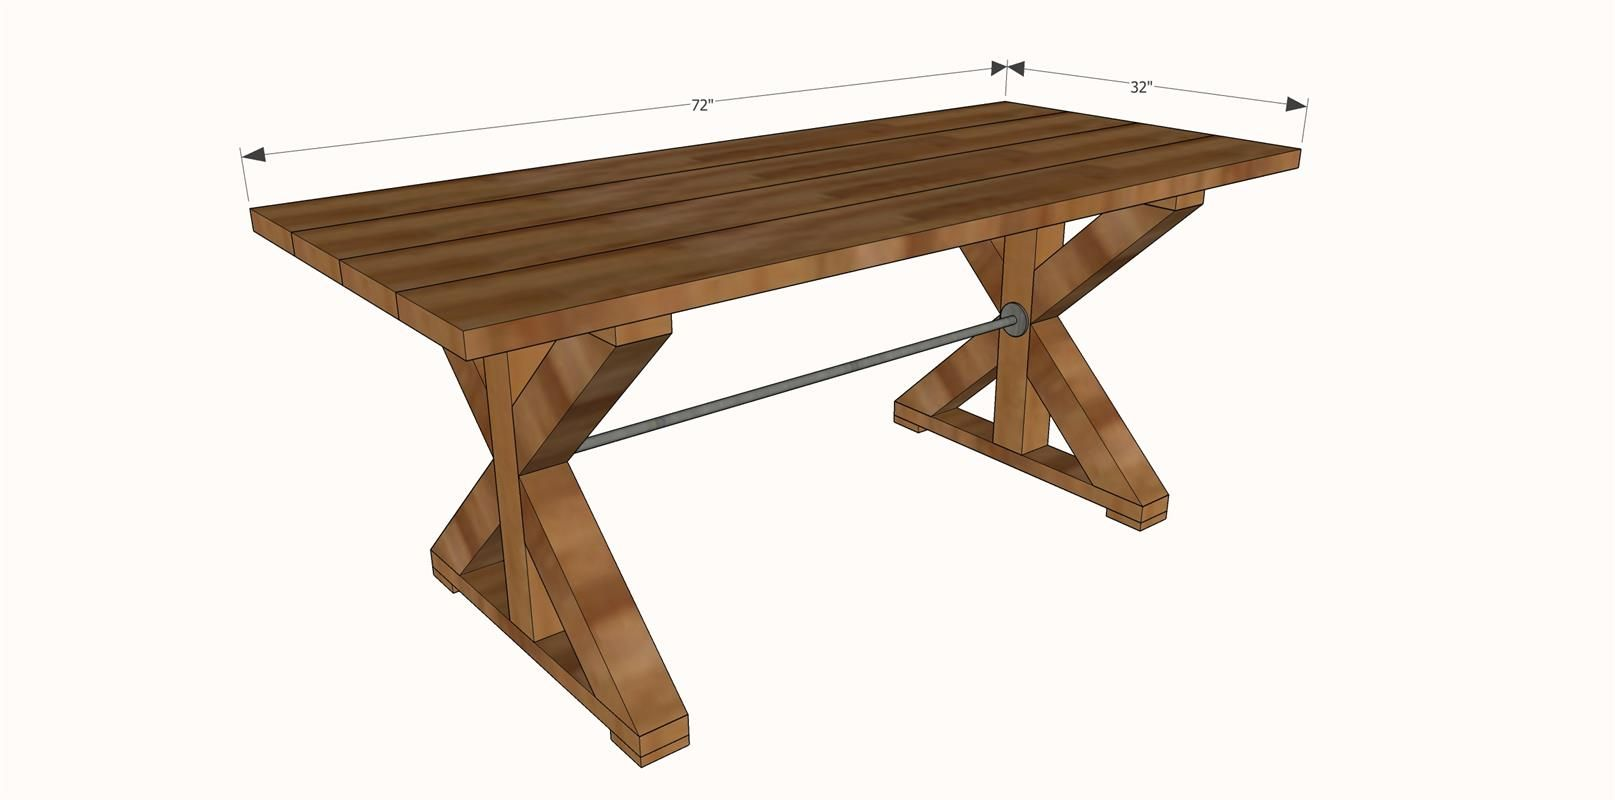 Farmhouse x table i wouldn 39 t have a pipe in the middle for 4x4 dining table